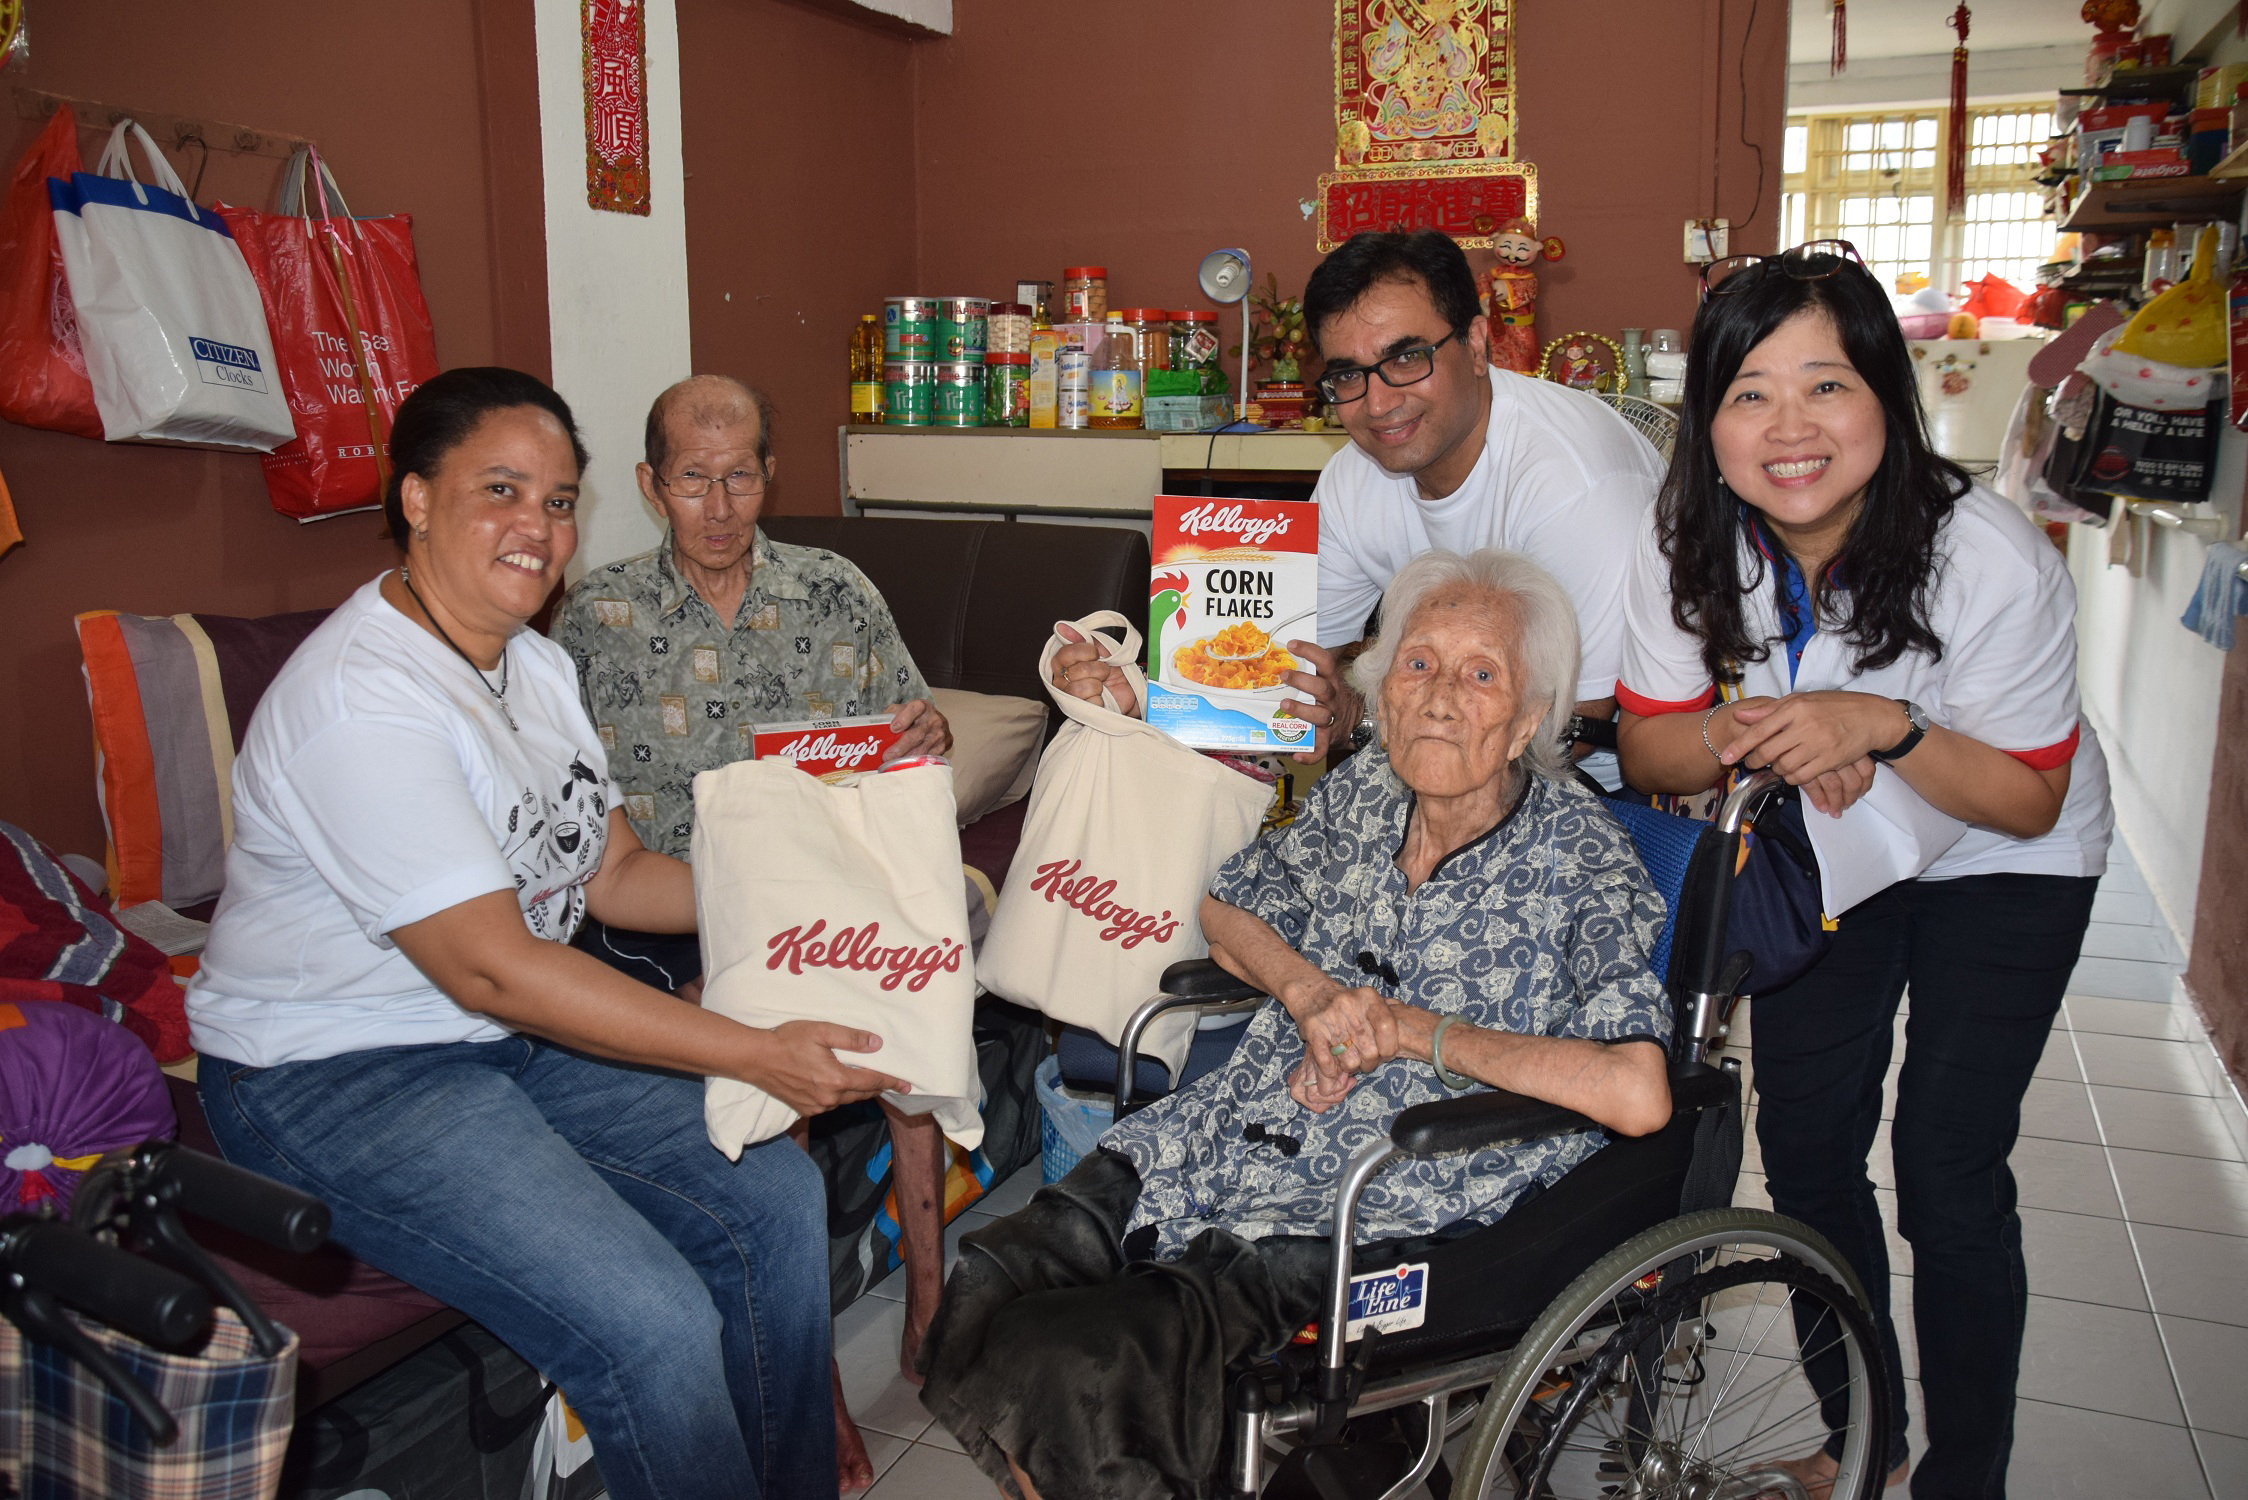 Kellogg employees achieved more than 7,400 employee volunteer days